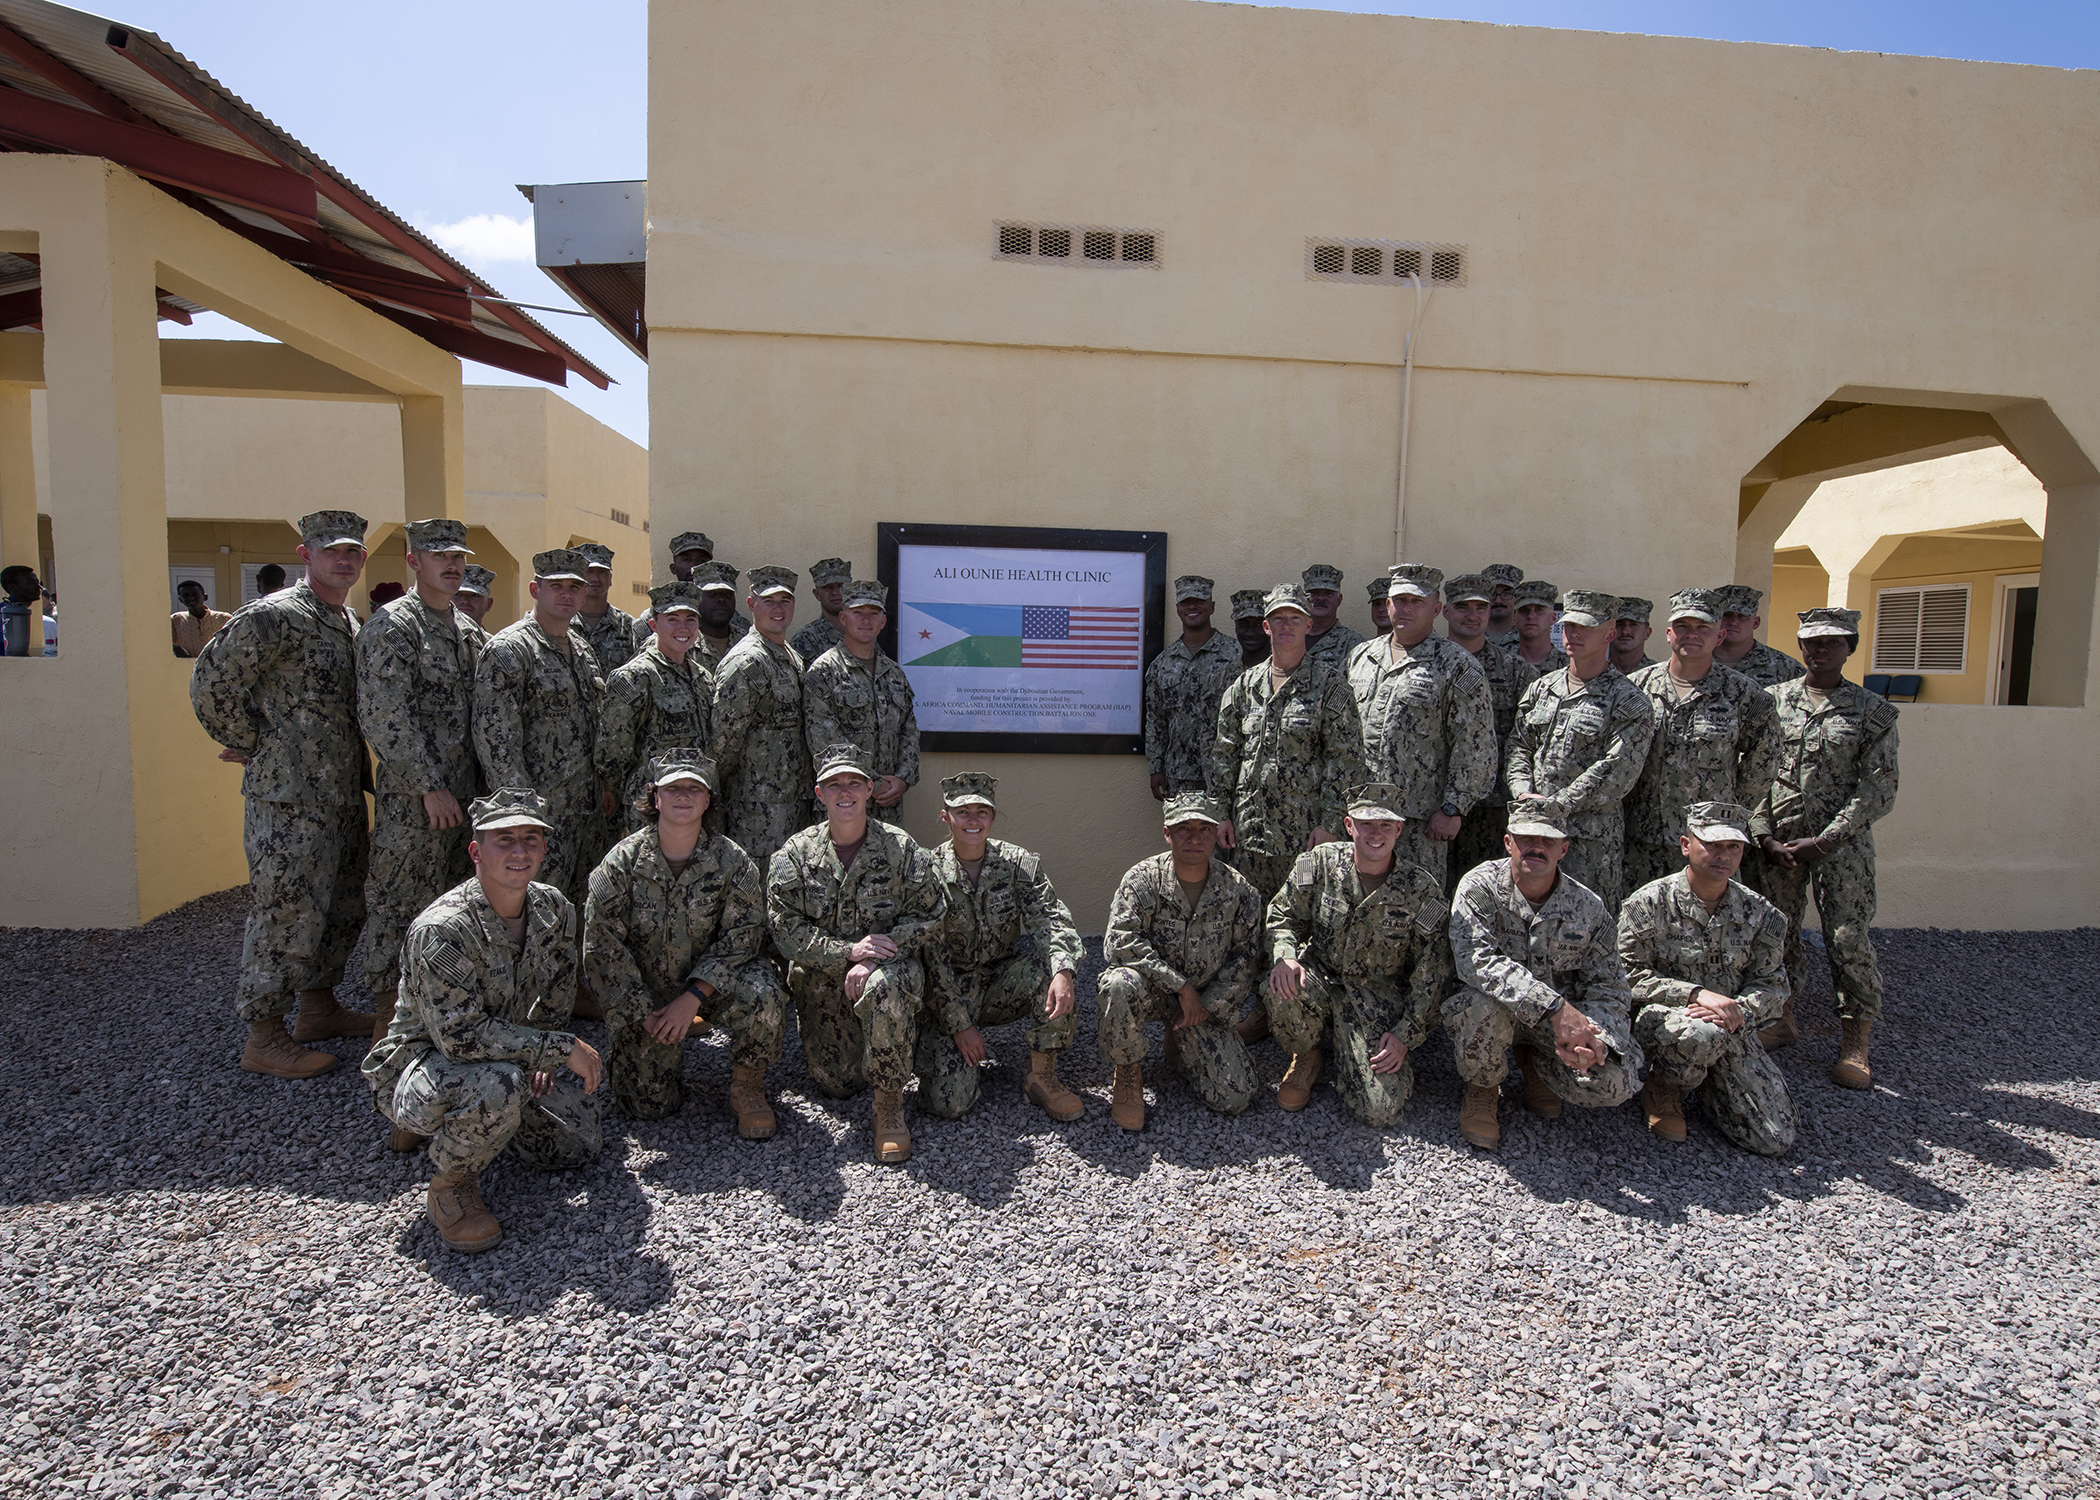 U.S. Navy Seabees from Naval Mobile Construction Battalion 1, assigned to Combined Joint Task Force-Horn of Africa, pose for a group photo during the Ali Oune Medial Clinic ribbon cutting ceremony in Ali Oune, Djibouti, Jan. 31, 2019. The clinic, which the Seabees have worked on for five months, is intended to enhance the Ministry of Health for Djibouti's ability to provide basic medical, birth and after care to the Ali Oune village and its more than 1,000 residents and rural neighbors. (U.S. Air Force photo by Tech. Sgt. Shawn Nickel)